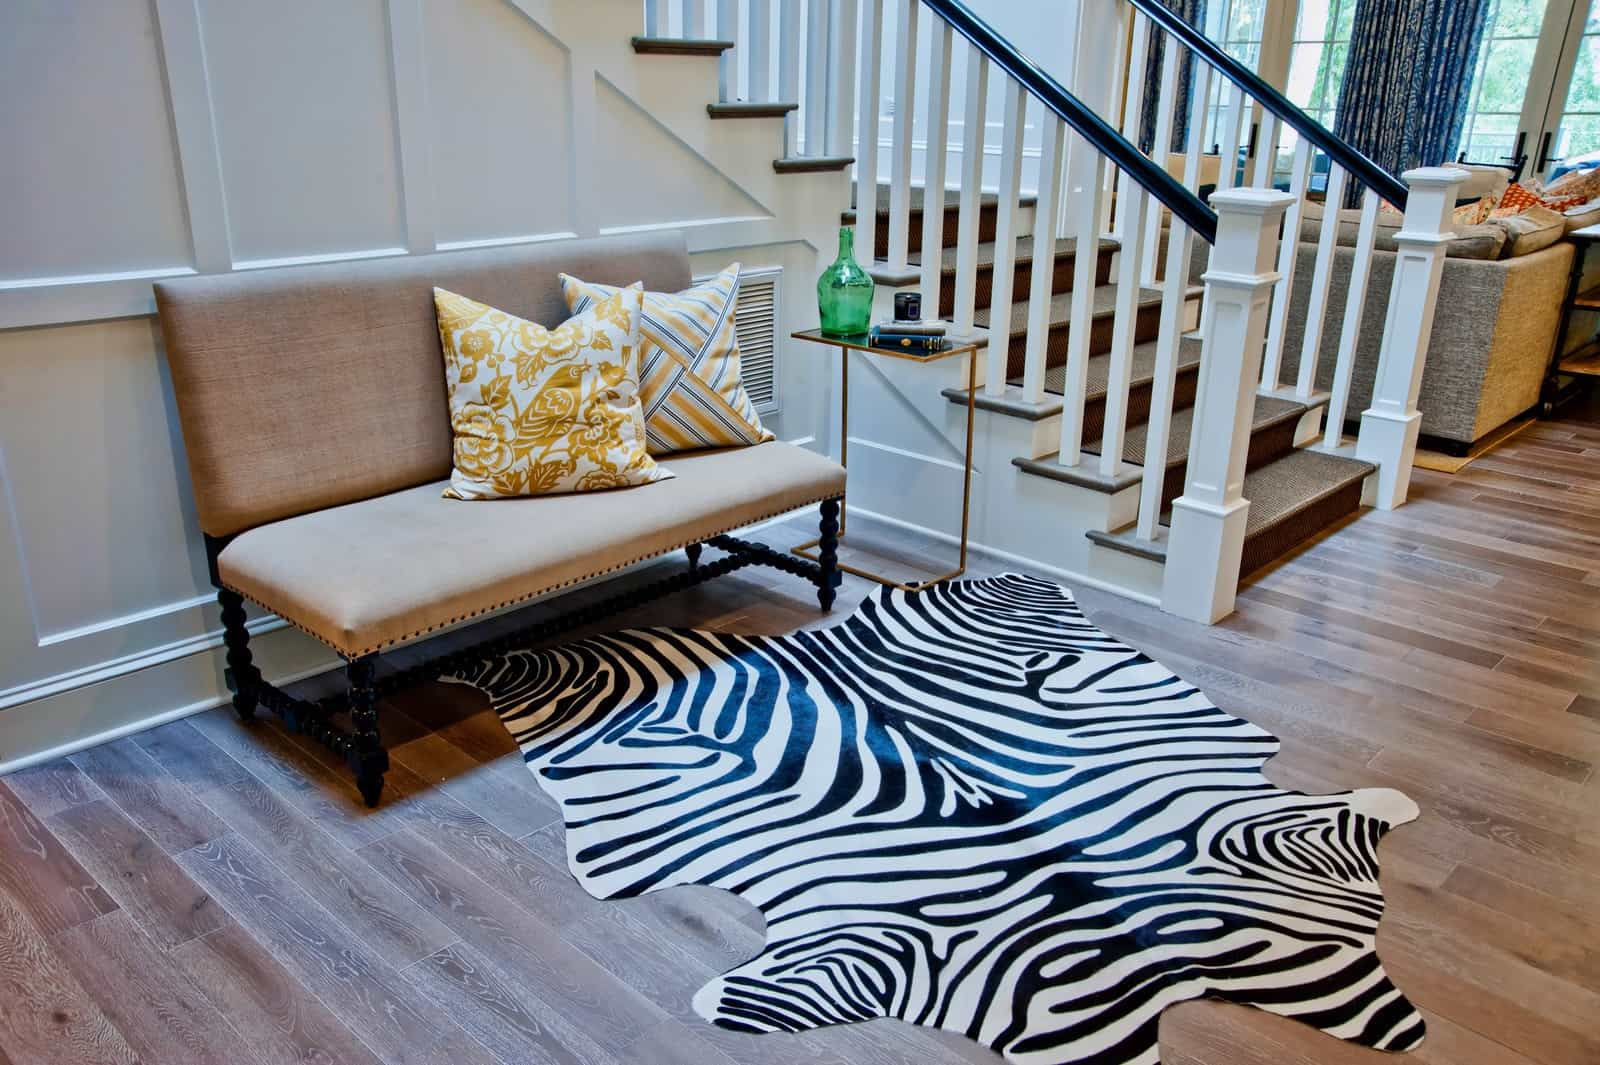 Black And White Zebra Animal Print Rug For Sitting Room Decor (Image 5 of 28)